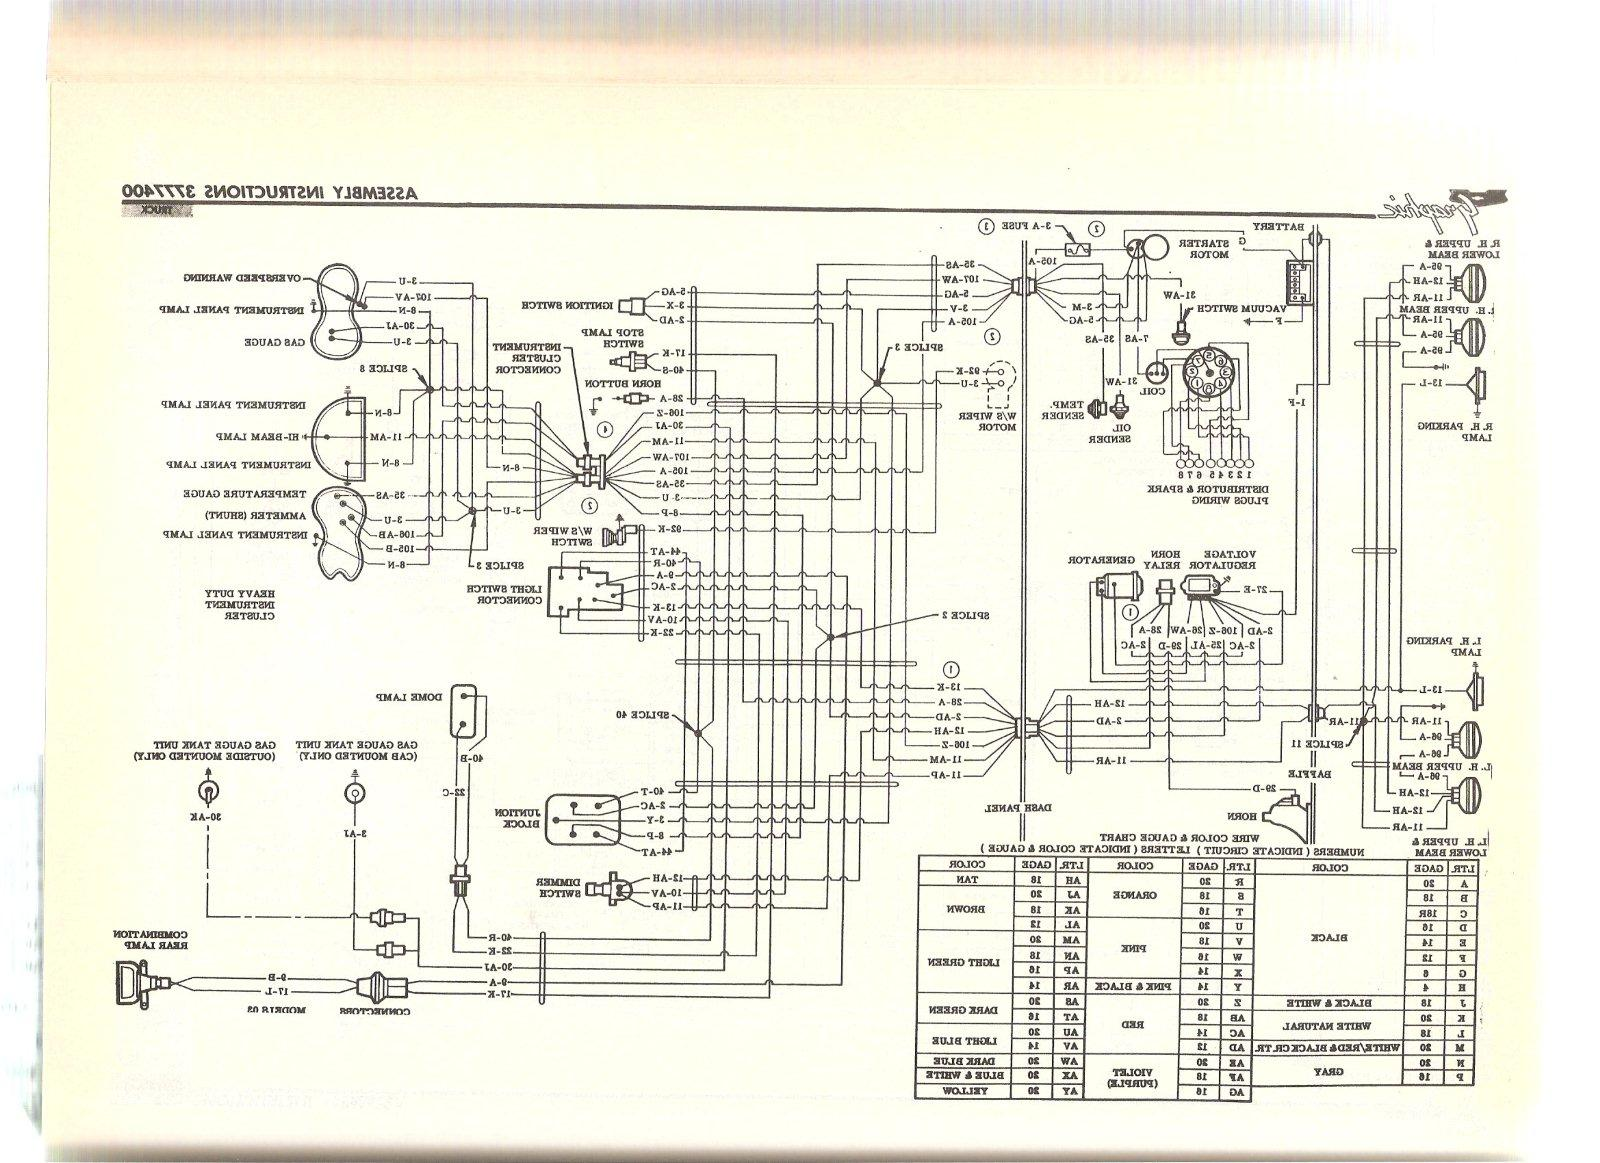 1960 C10 Wiring Diagram Best Secret 1961 Chevy Dash Gauges Chevrolet Apache 56 Truck 72 Schematic